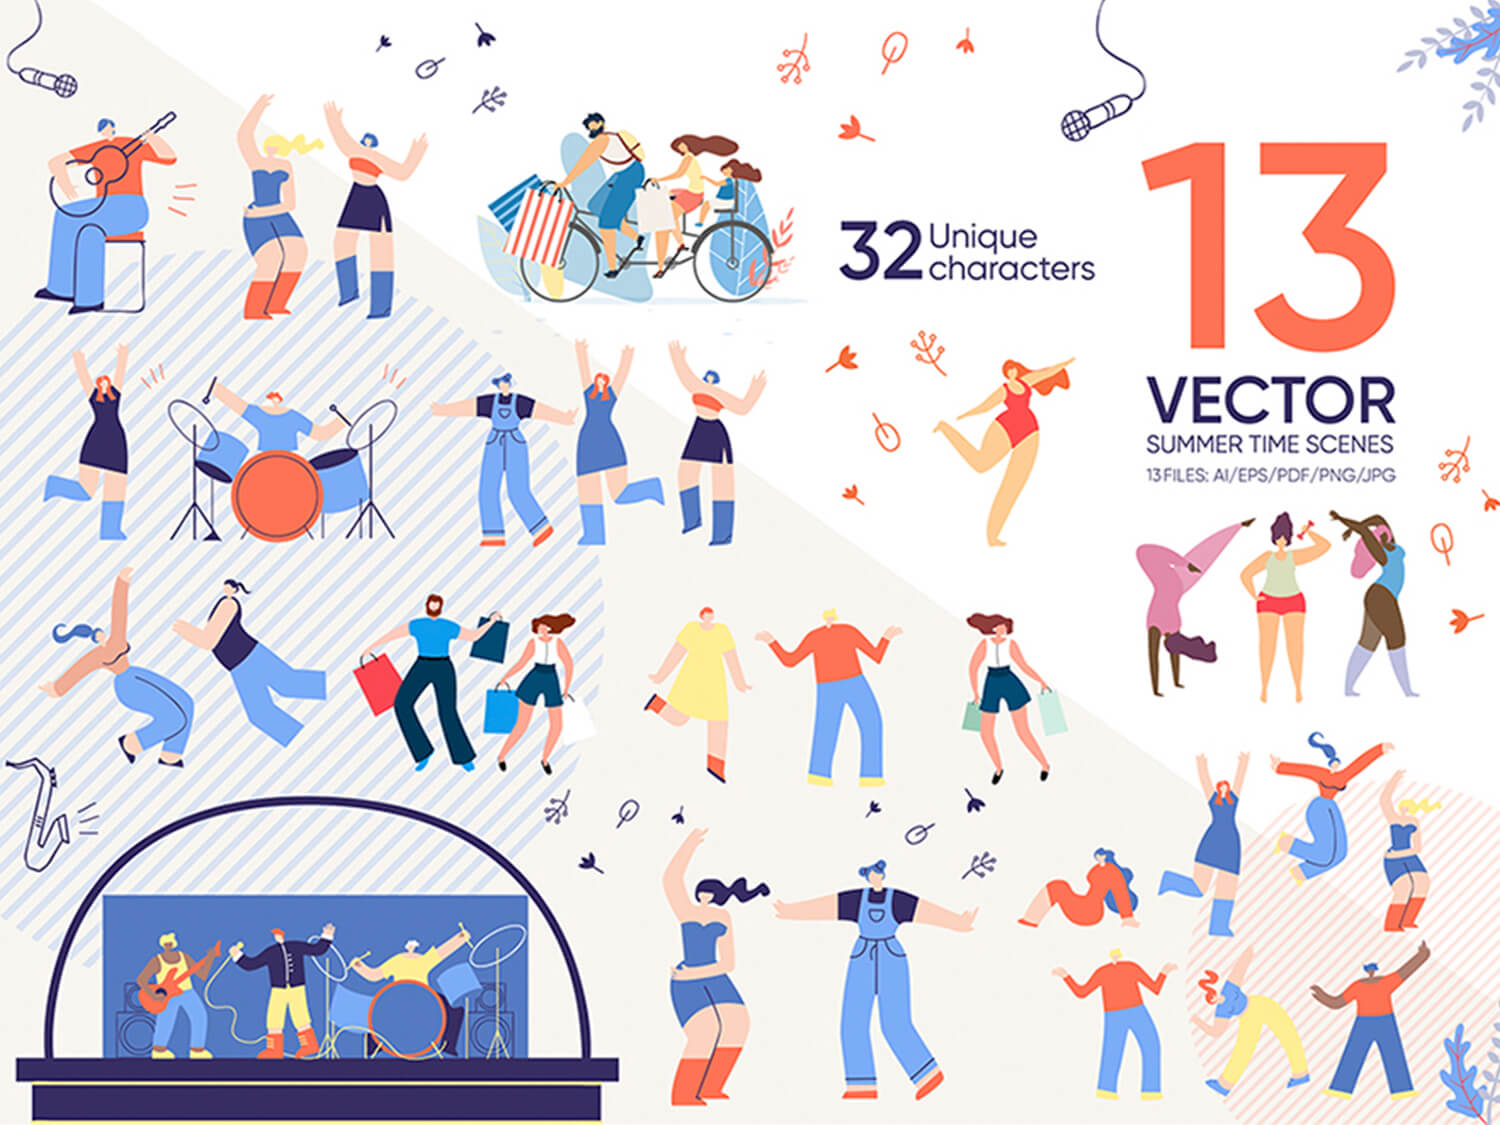 24-in-1 Flaticons Bundle: 13 Summer Time Vector Scenes